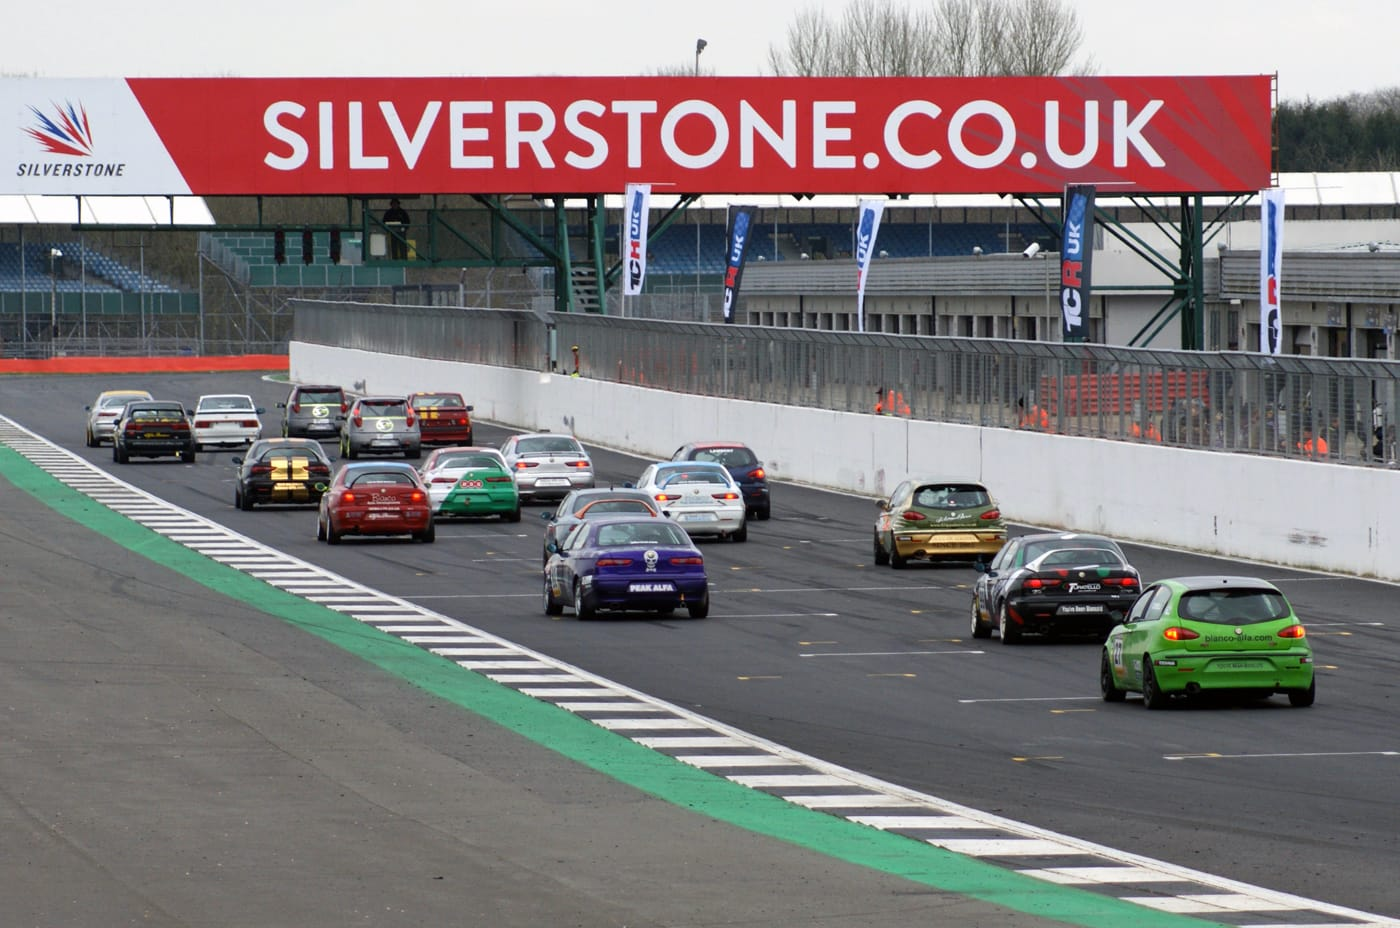 Silverstone 2018 Preview